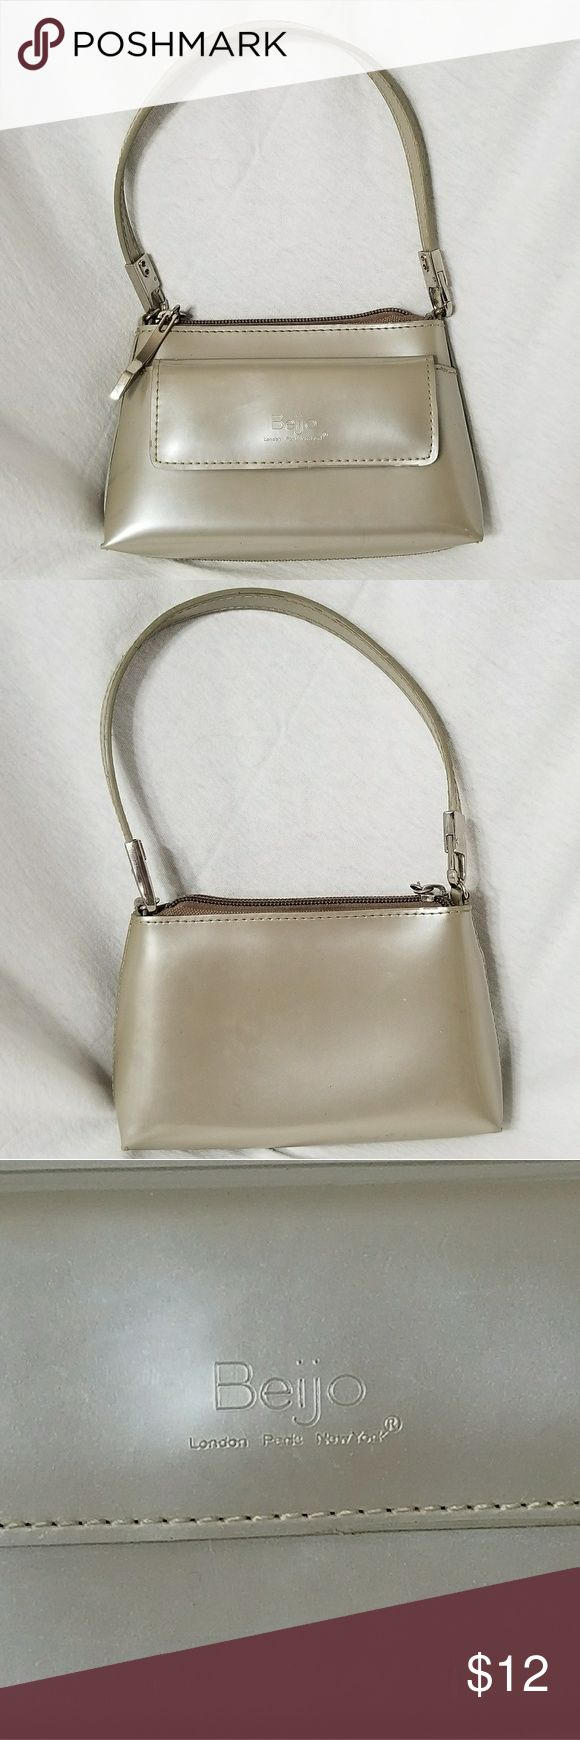 "BEIJO Mini Pearlized Gray Handbag Brand: Beijo  Item: *Very Light Grey Mini Beijo Purse *One Snap Close Pocket on the Front of the Bag *Interior Has One Zippered Pouch *Several Scuffs - As Shown in the Last 2 Pictures, Price Reflects *Removeable Strap *This Would Be a Very Cute Young Girls Bag *Silver Hardware *Measures 6.5""w x 4.5""h x 1""d  *no trades, offers via offer button only* Beijo Bags Mini Bags"